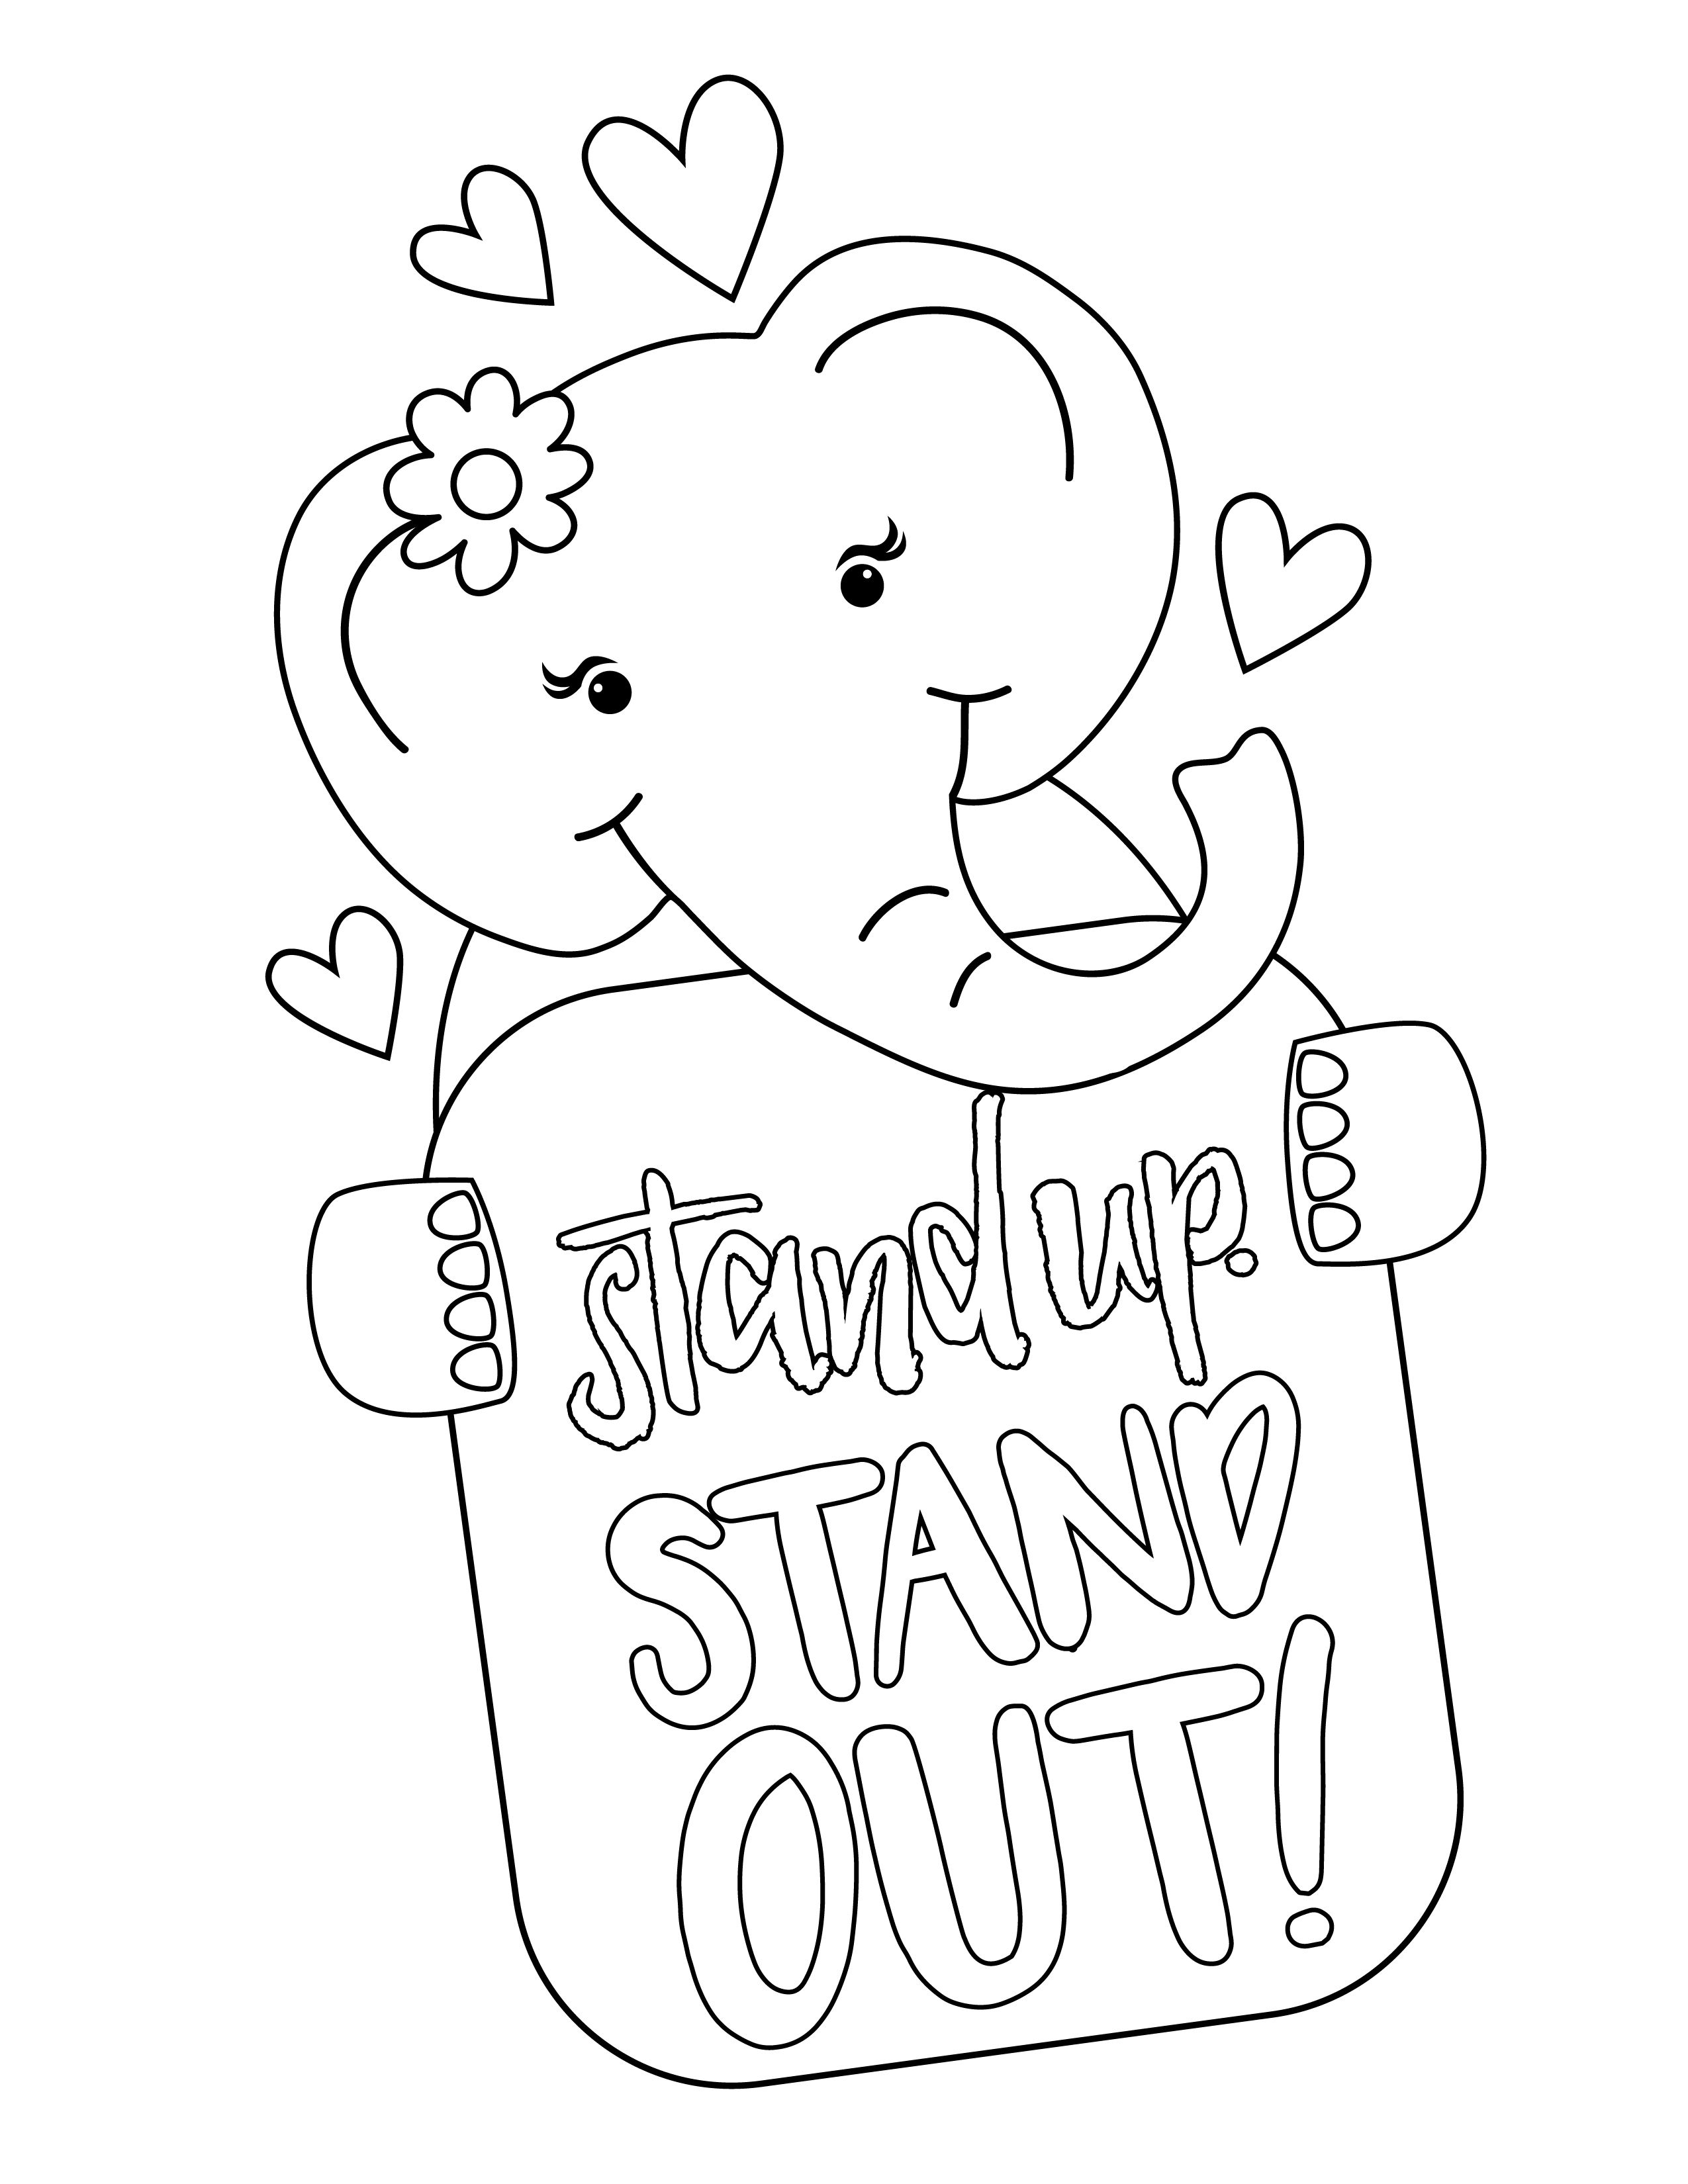 2018 Girl Scout Cookie Mascot Coloring Page Girl Scout Cookies